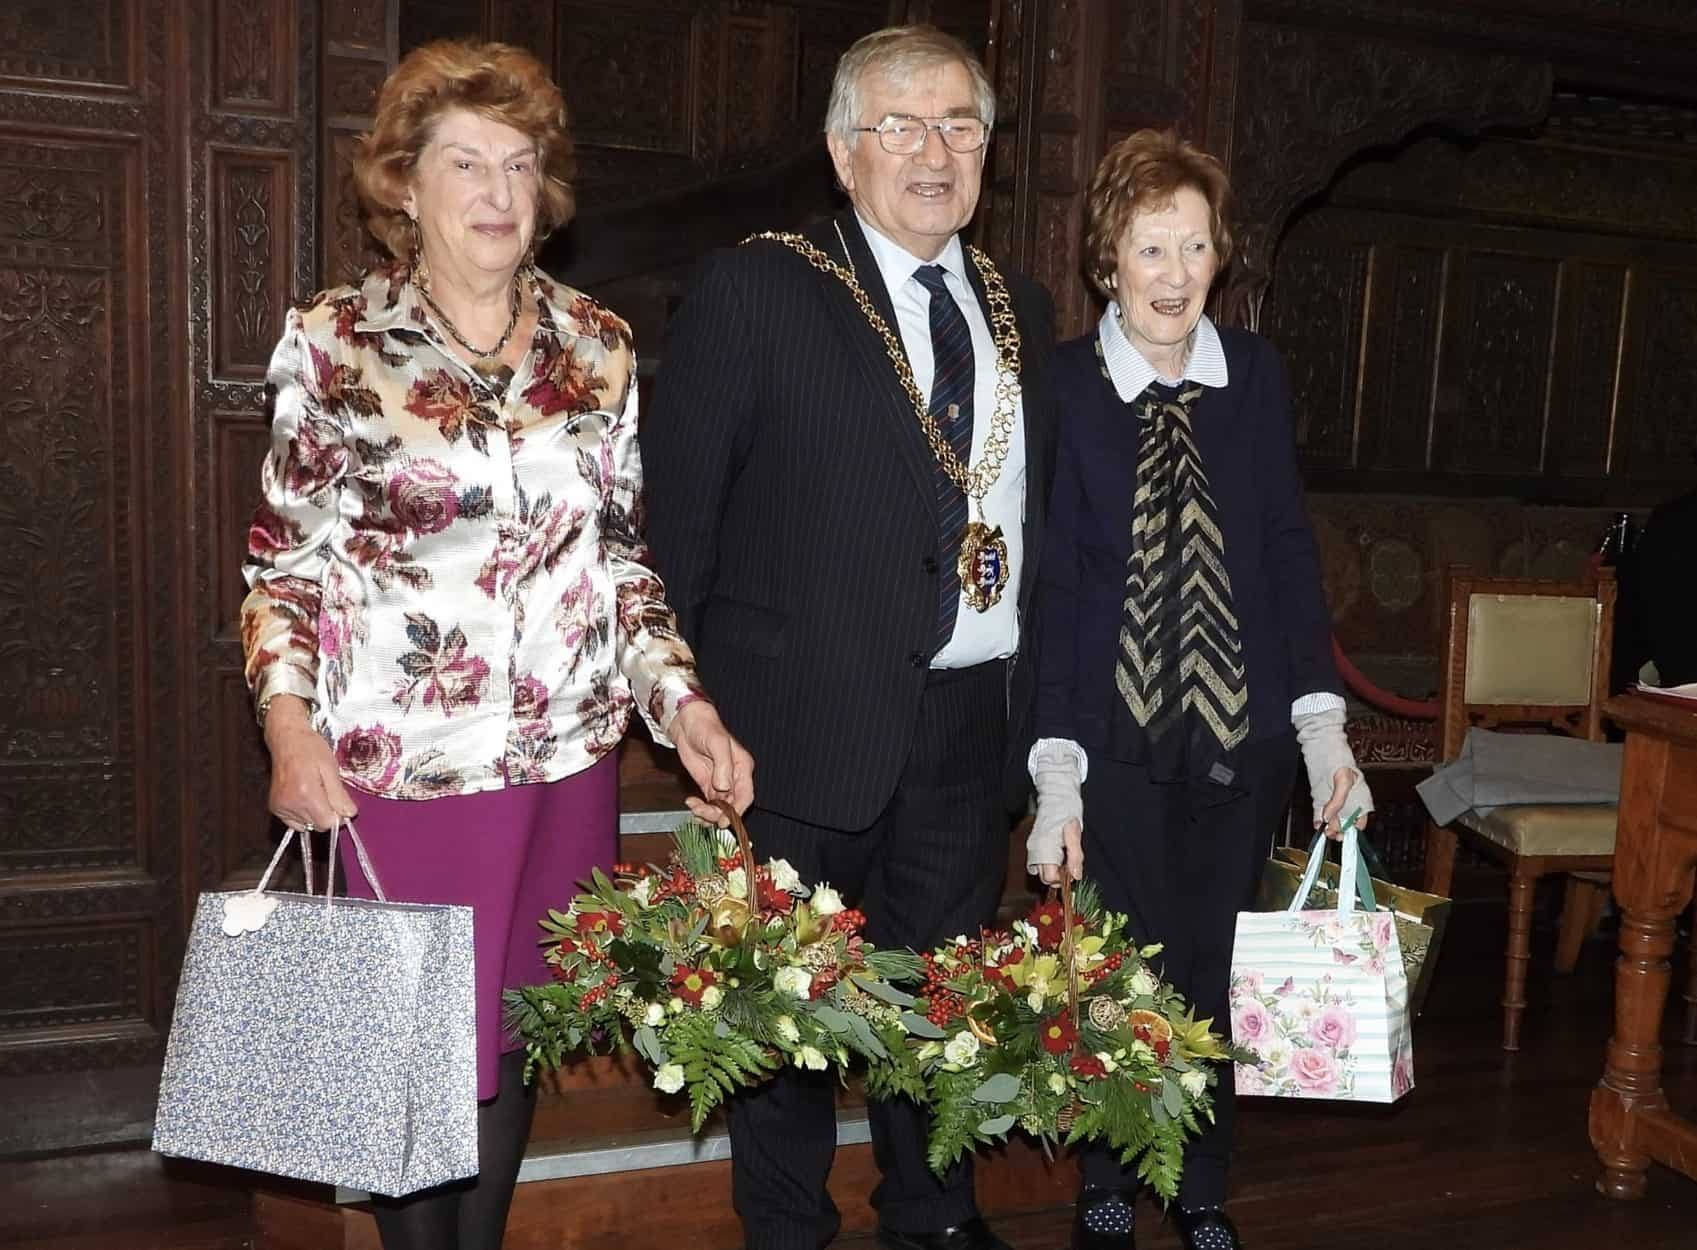 Museum association stalwarts bow out at AGM